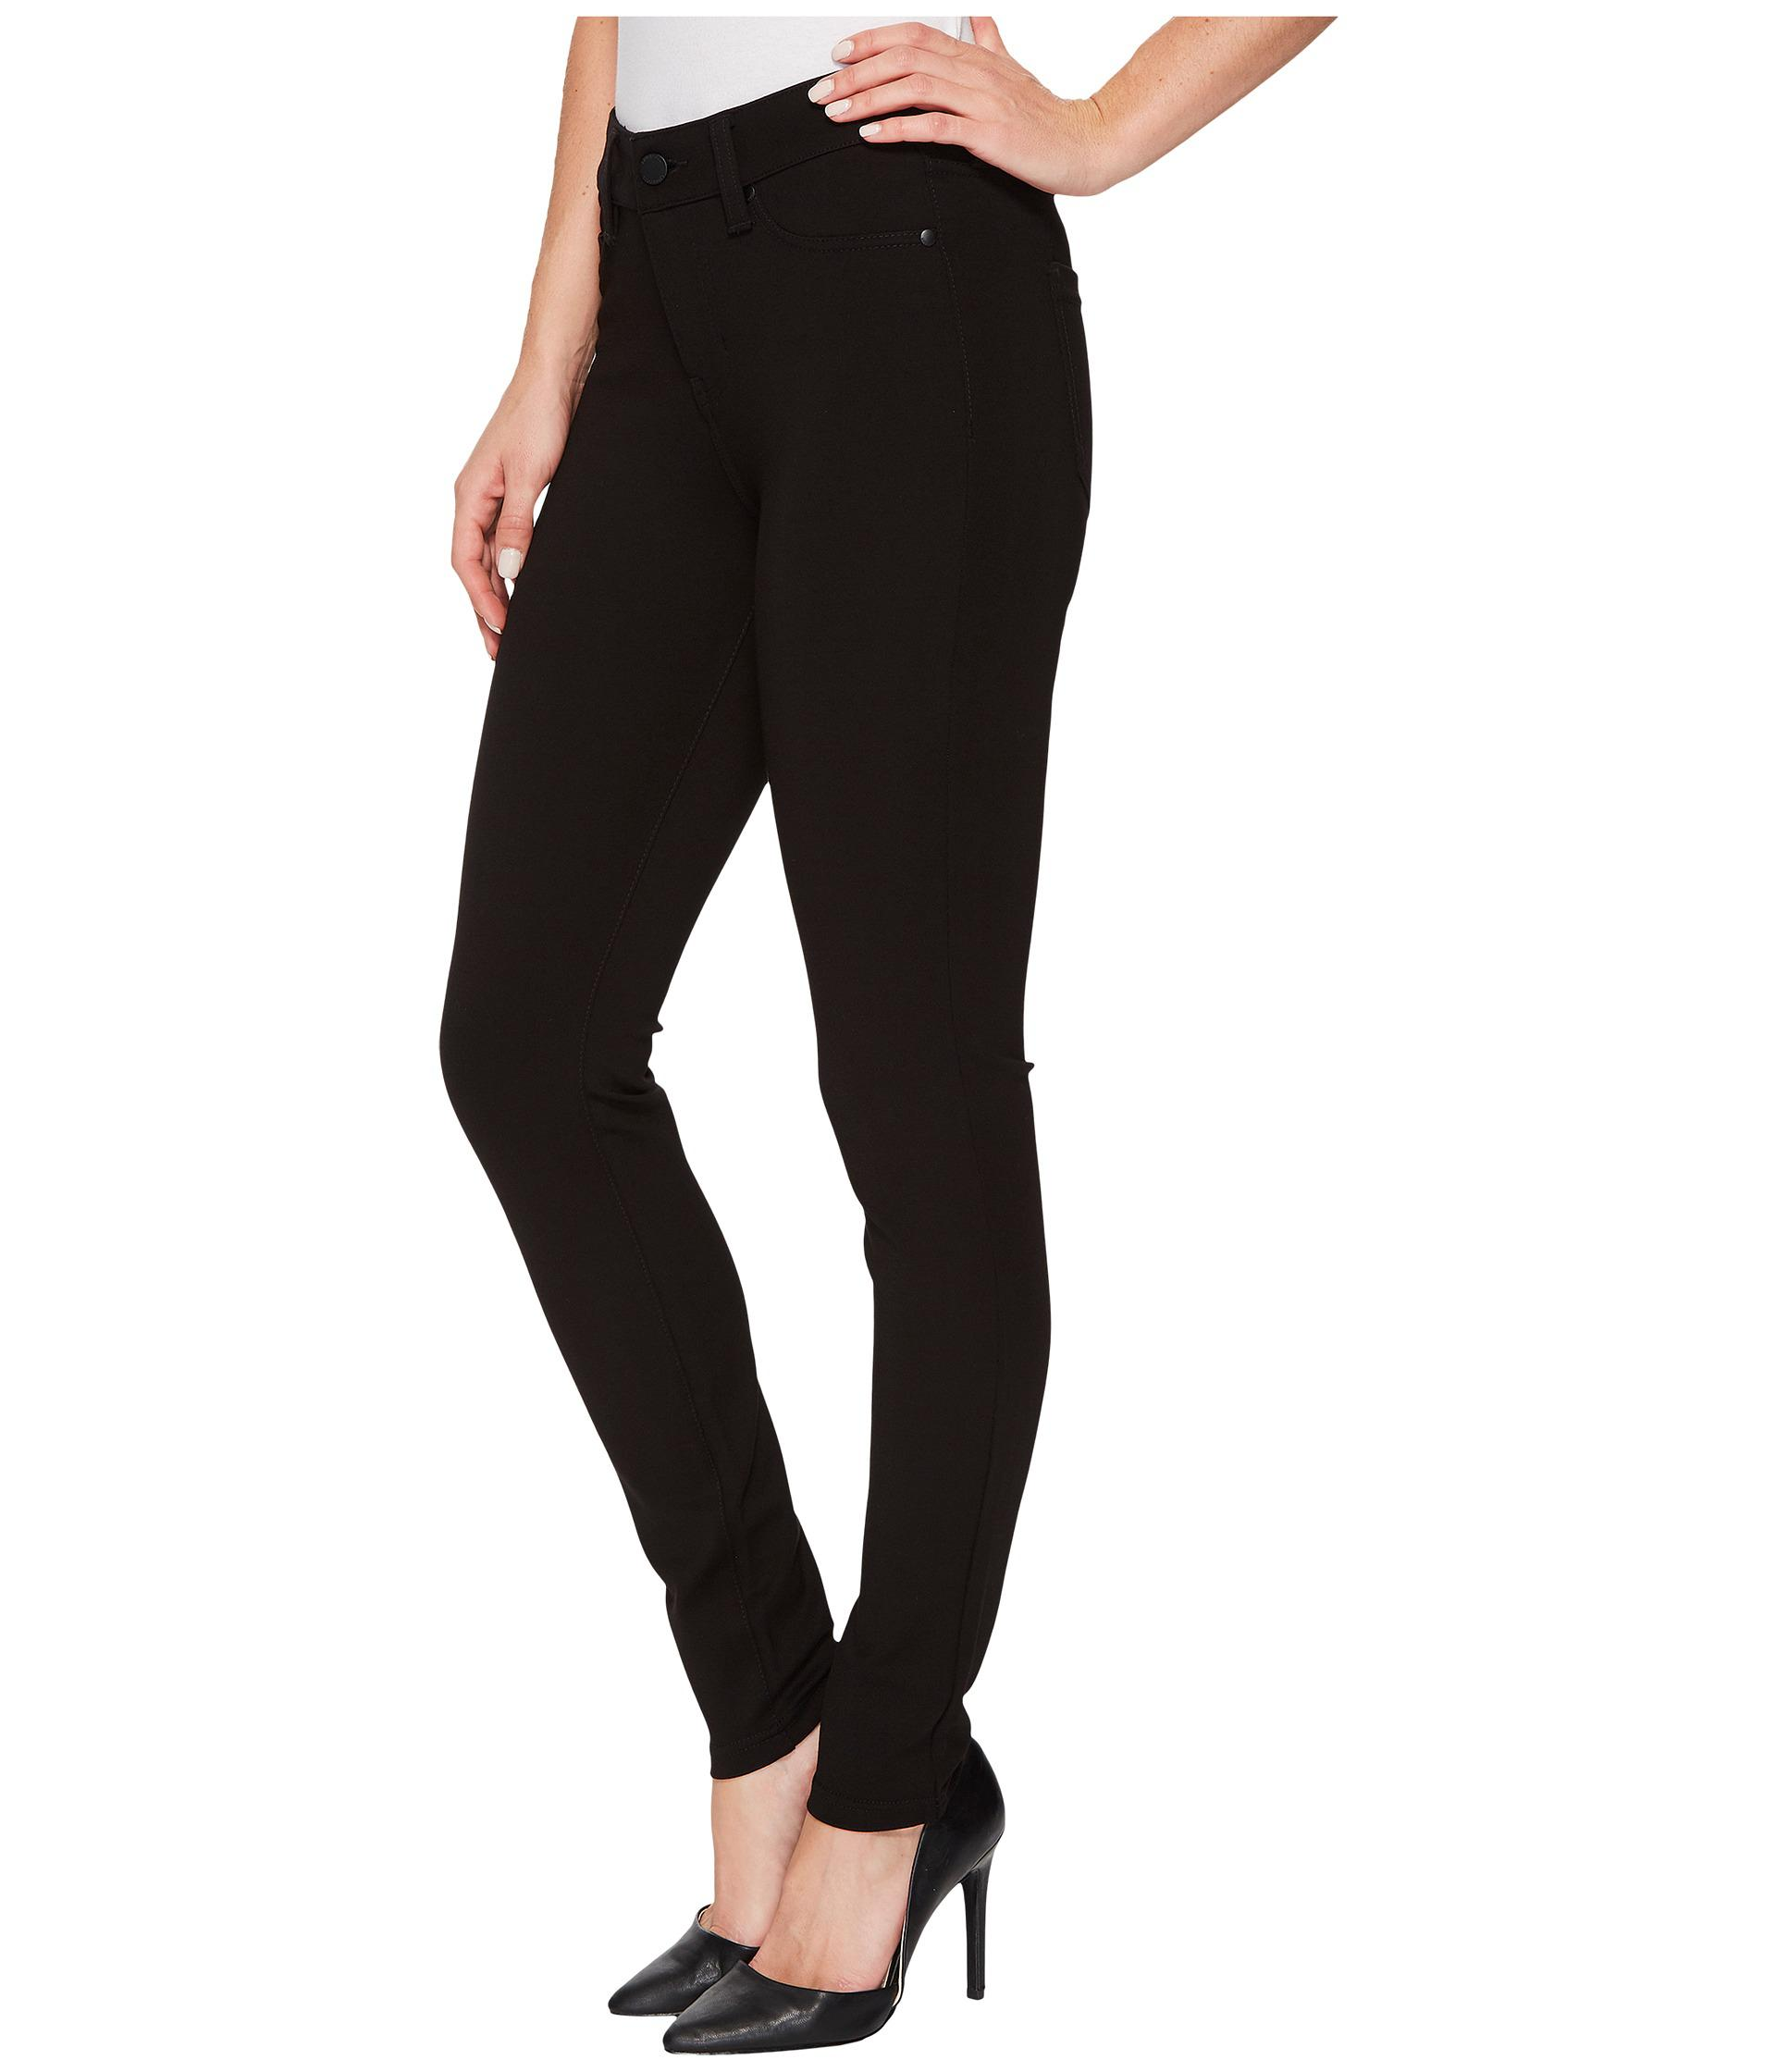 Liverpool Jeans Company | Madonna Five-pocket Leggings In Silky Soft Ponte  Knit In Black. View Fullscreen